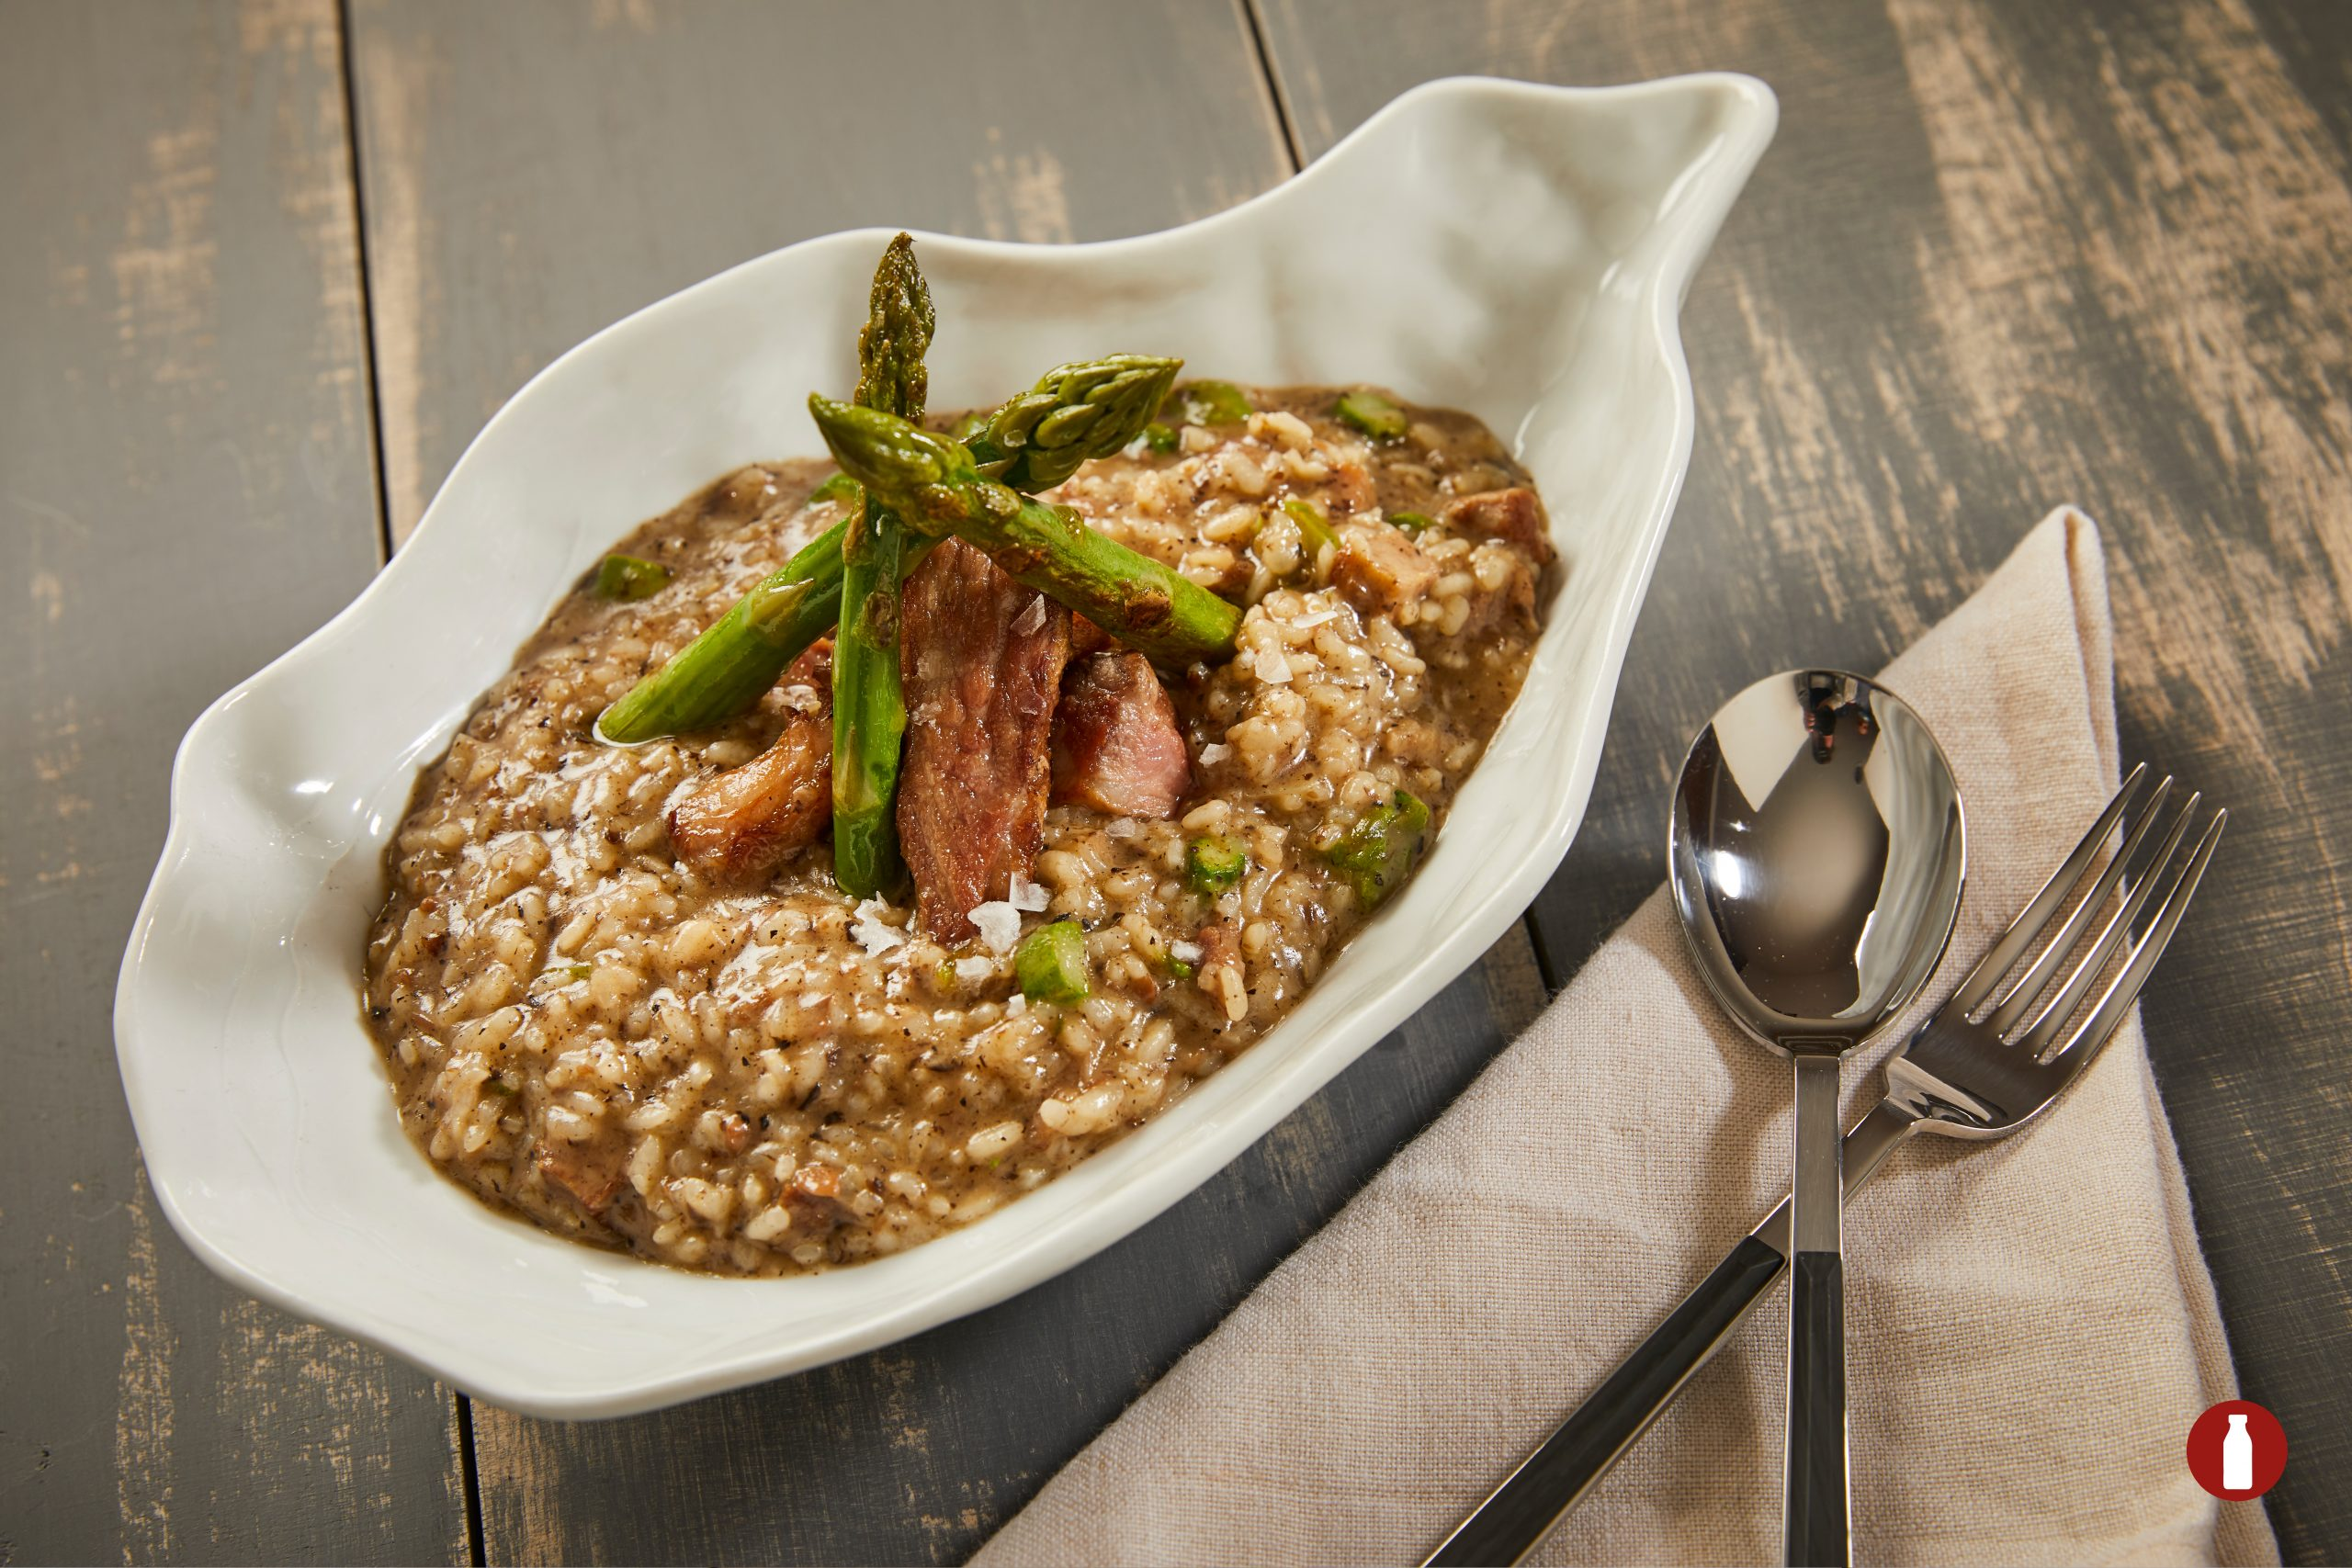 CREAMY RICE WITH IBERIAN SIRLOIN, GREEN ASPARAGUS AND TRUFLE